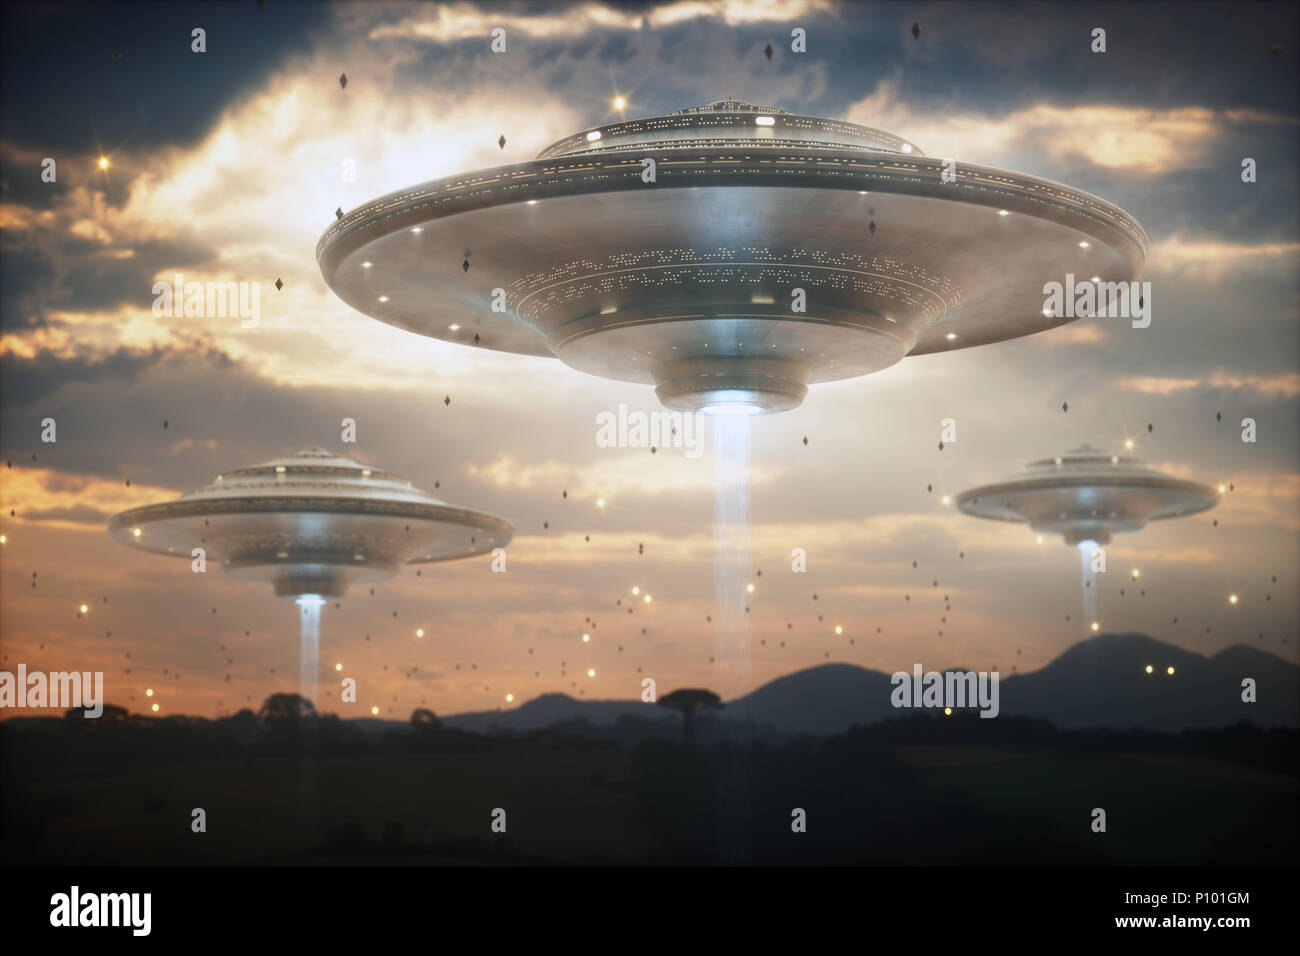 3d illustration invasion of alien spaceships sky filled with